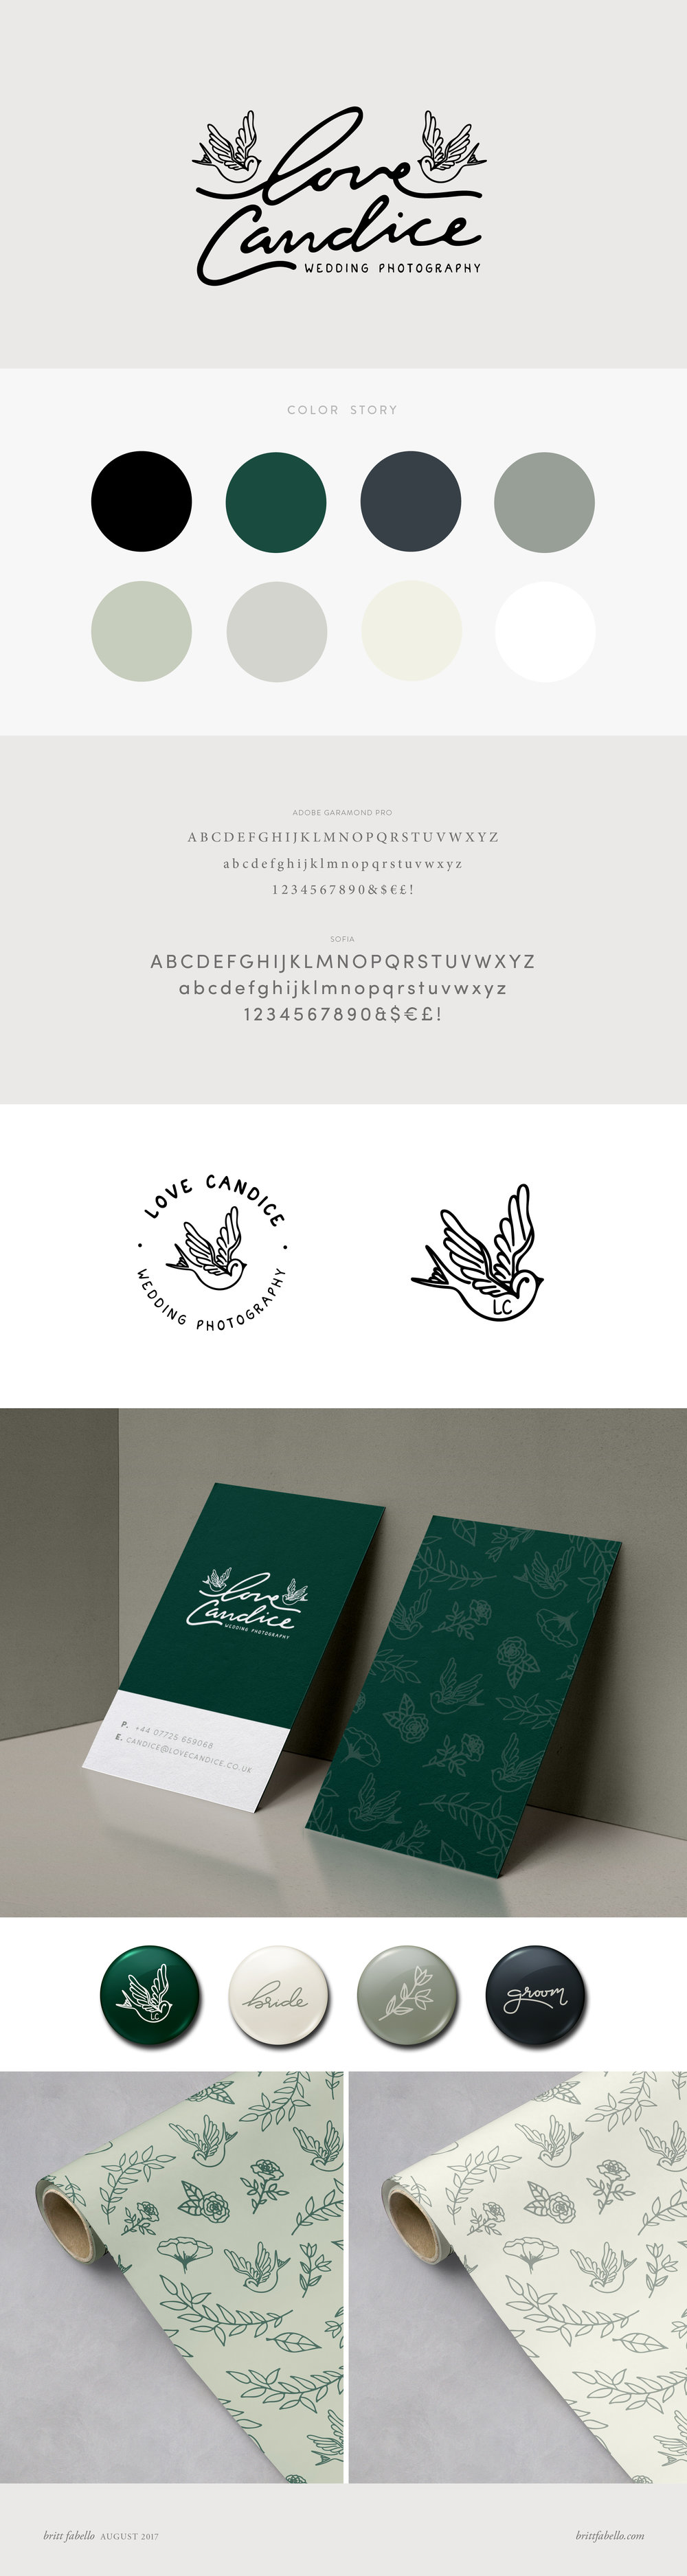 Design: Logo & Branding for Love Candice | Britt Fabello